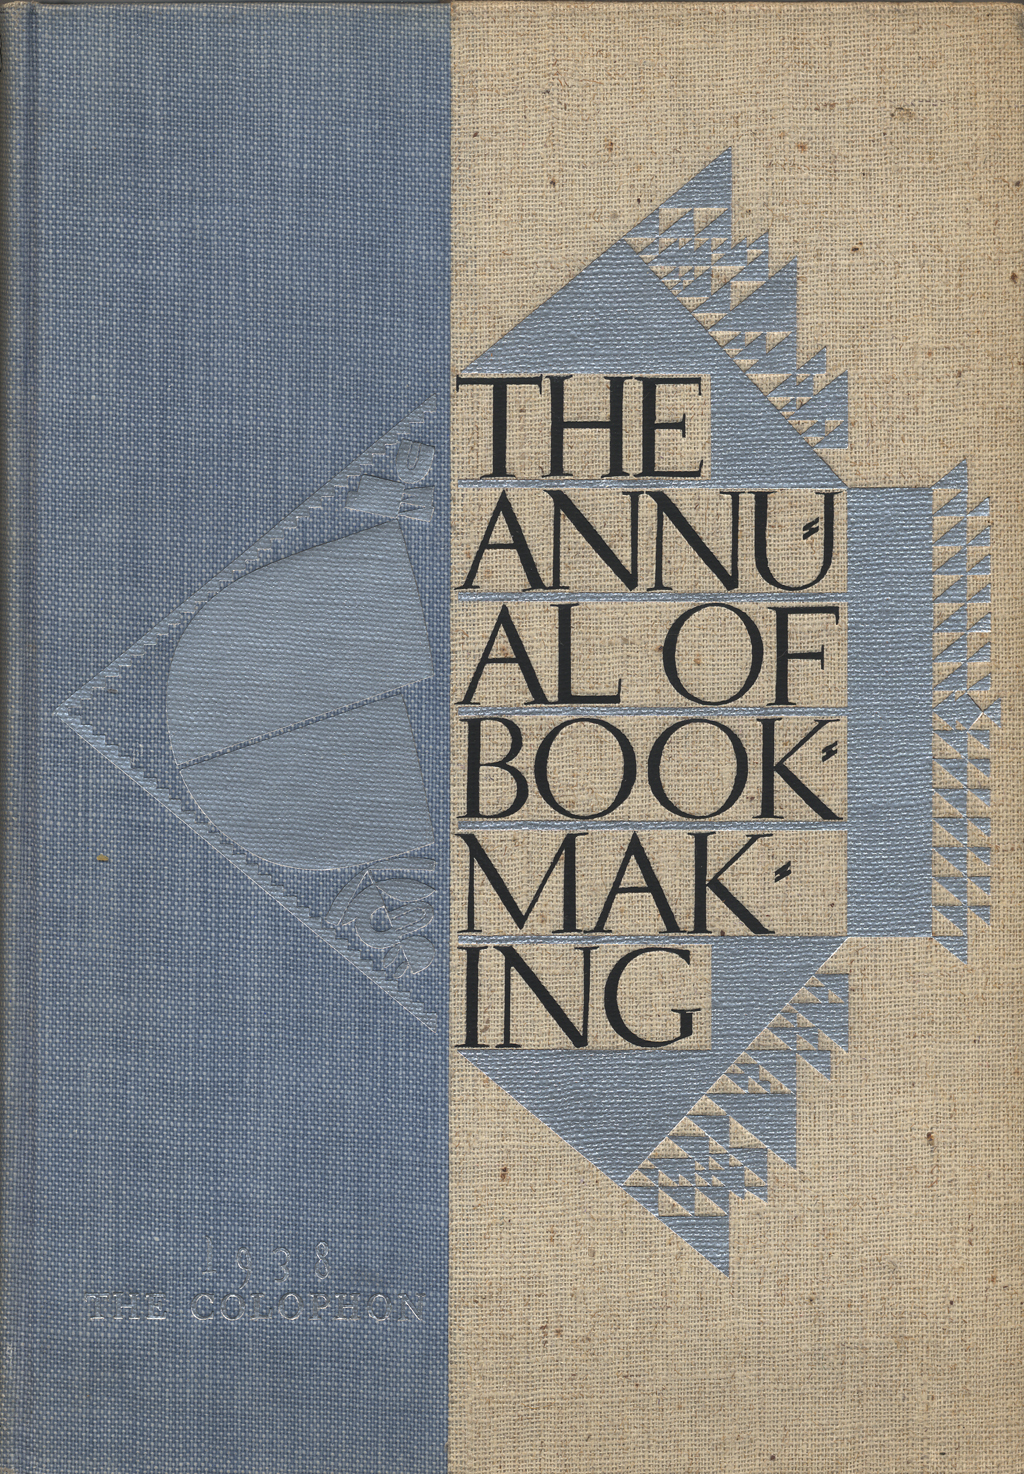 The Annual of Bookmaking (New York: The Colophon, 1938). Binding design by W.a. Dwiggins.